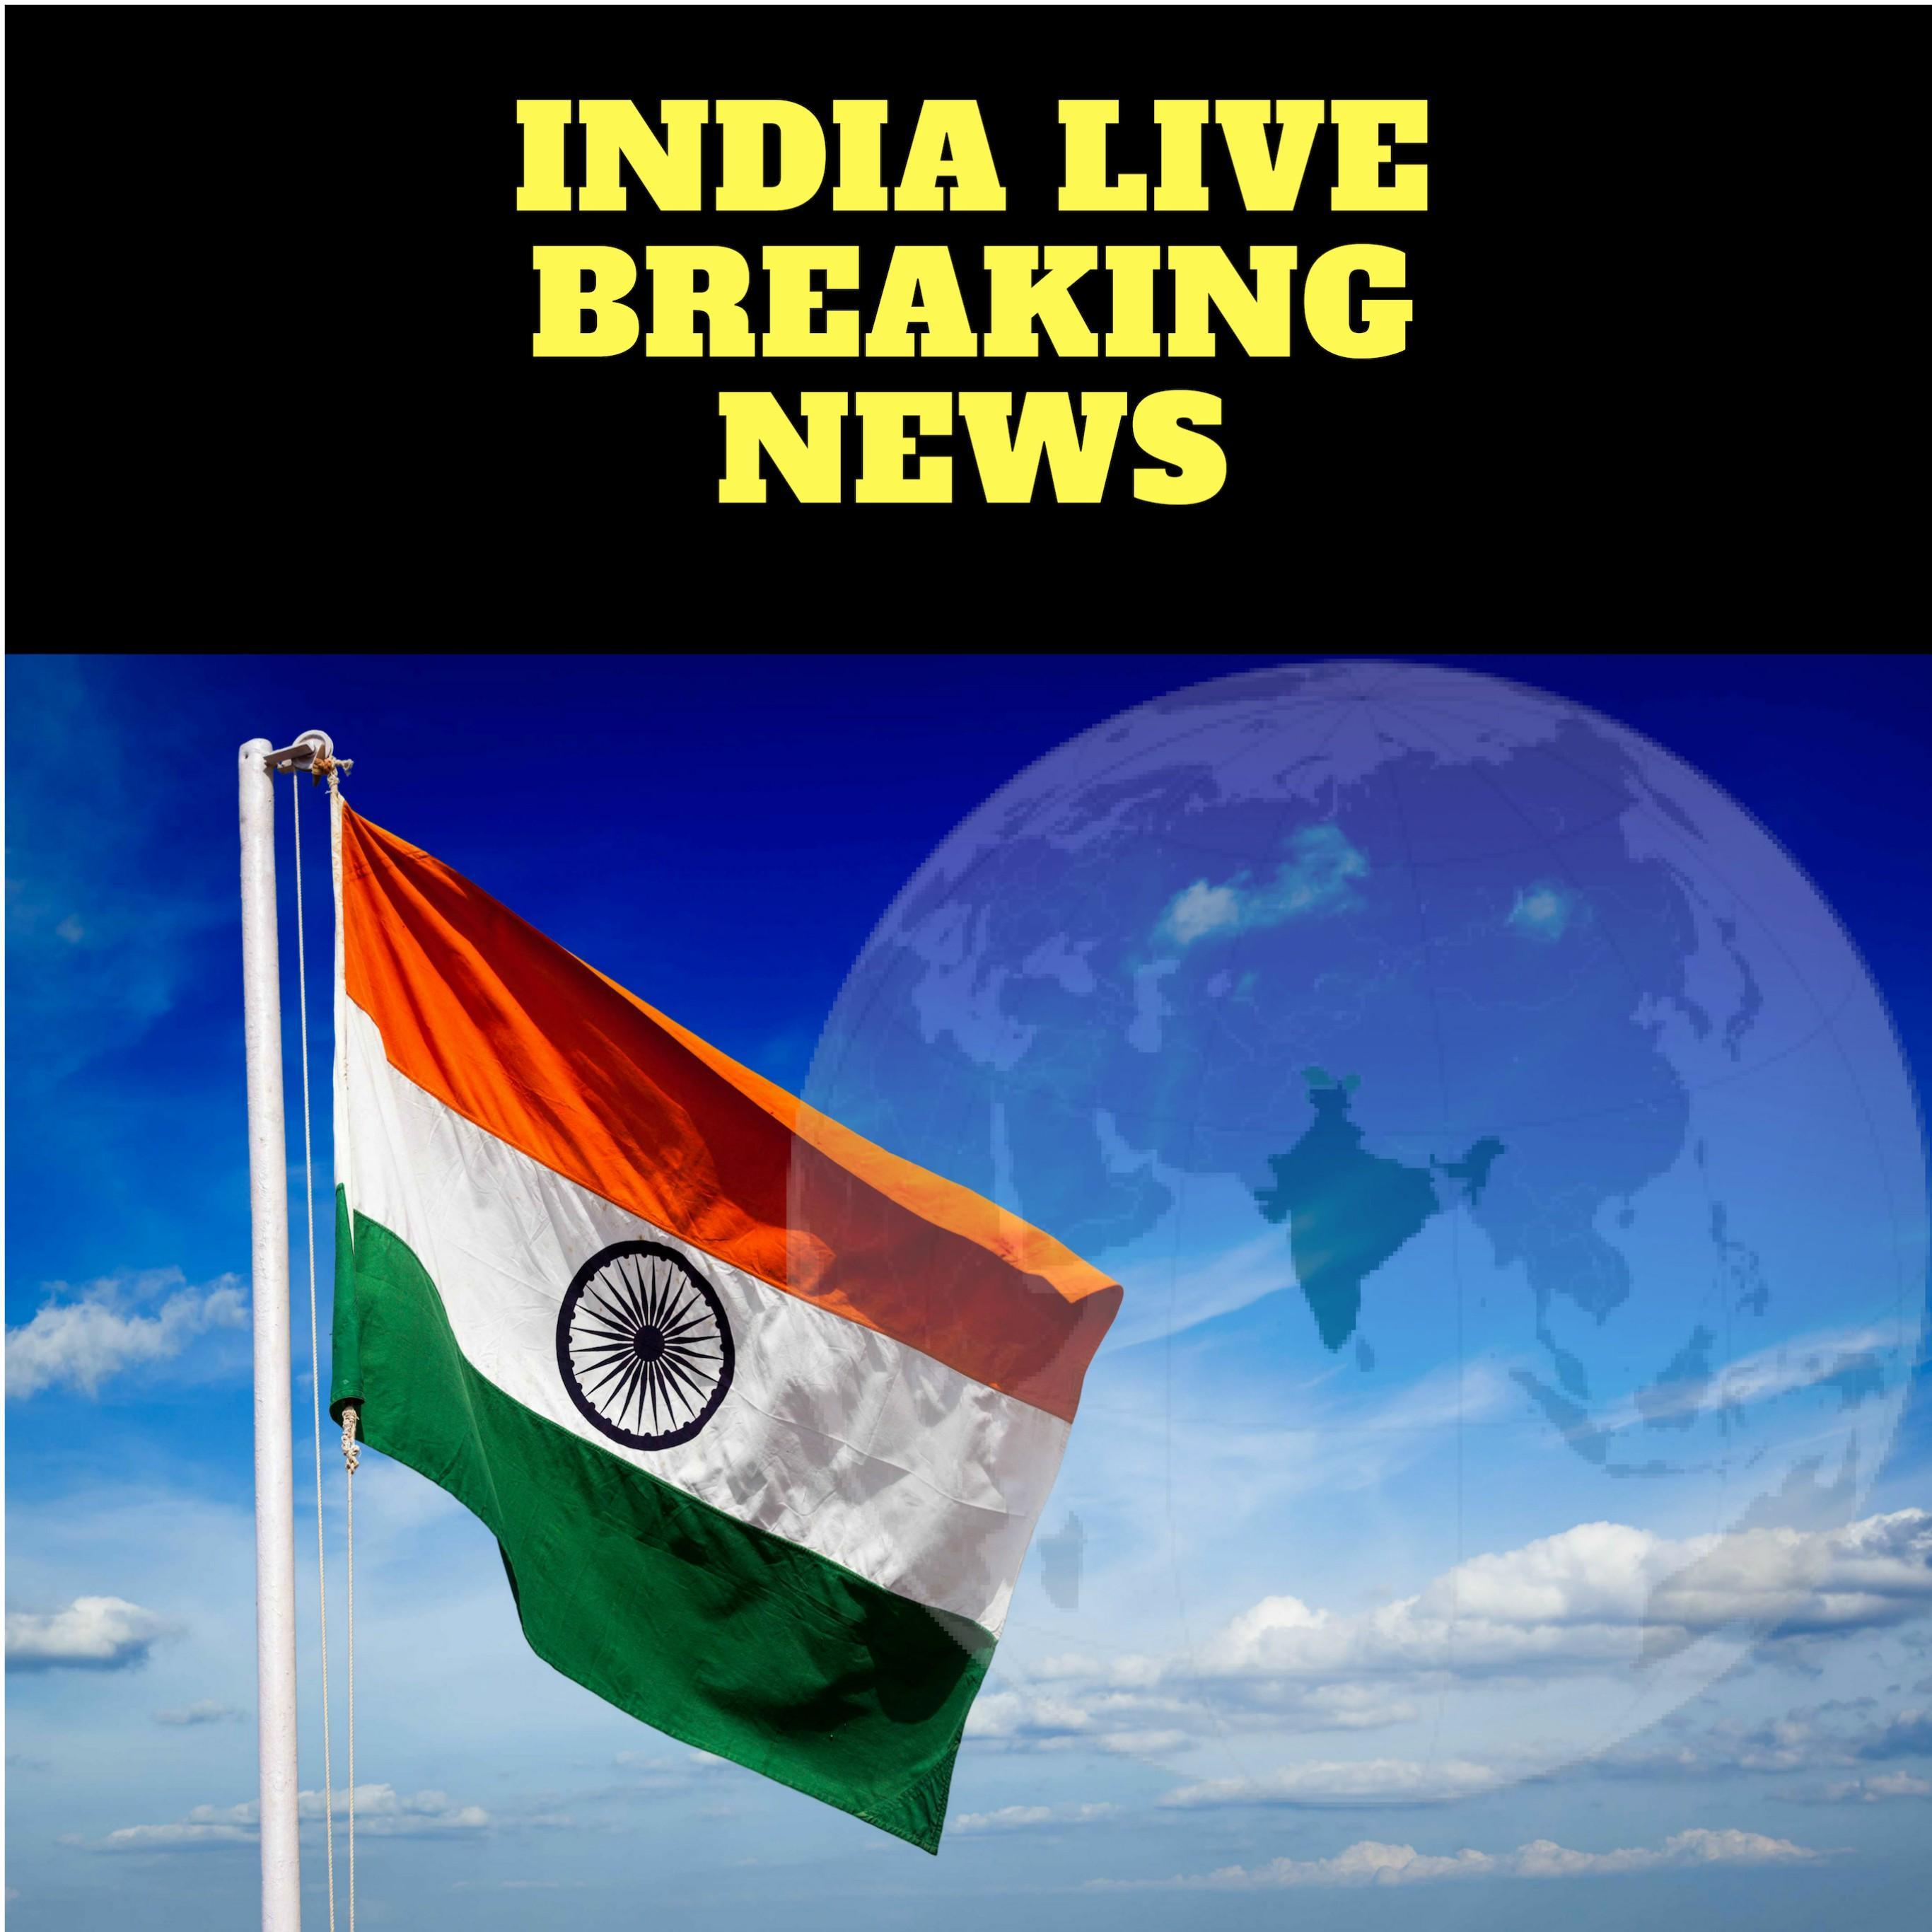 India Live Breaking News poster